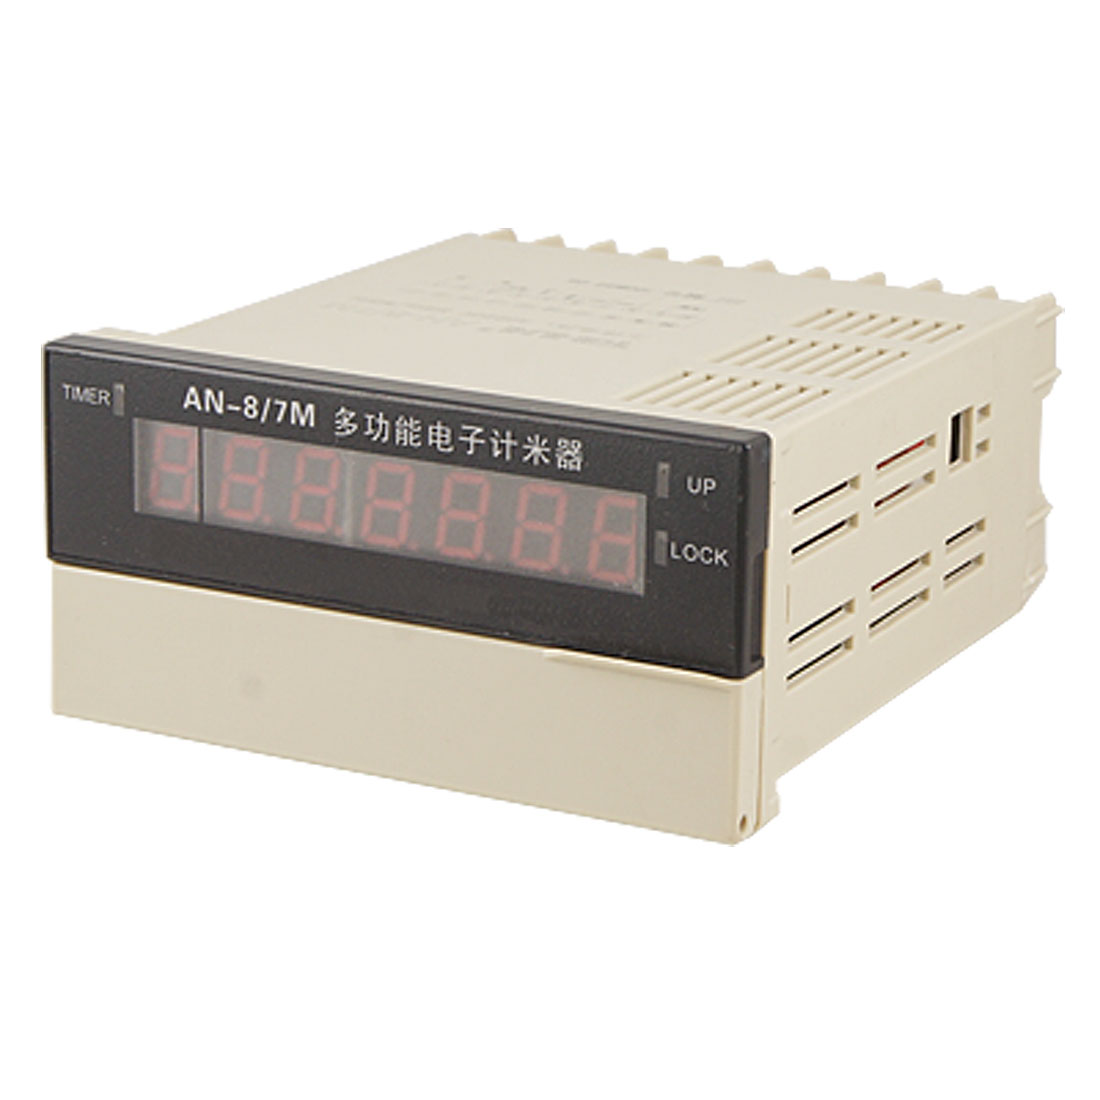 "0.39"" LCD Display 1-9999999 Automatic Reset Time Counter Relay AN8/7M AC 220V"